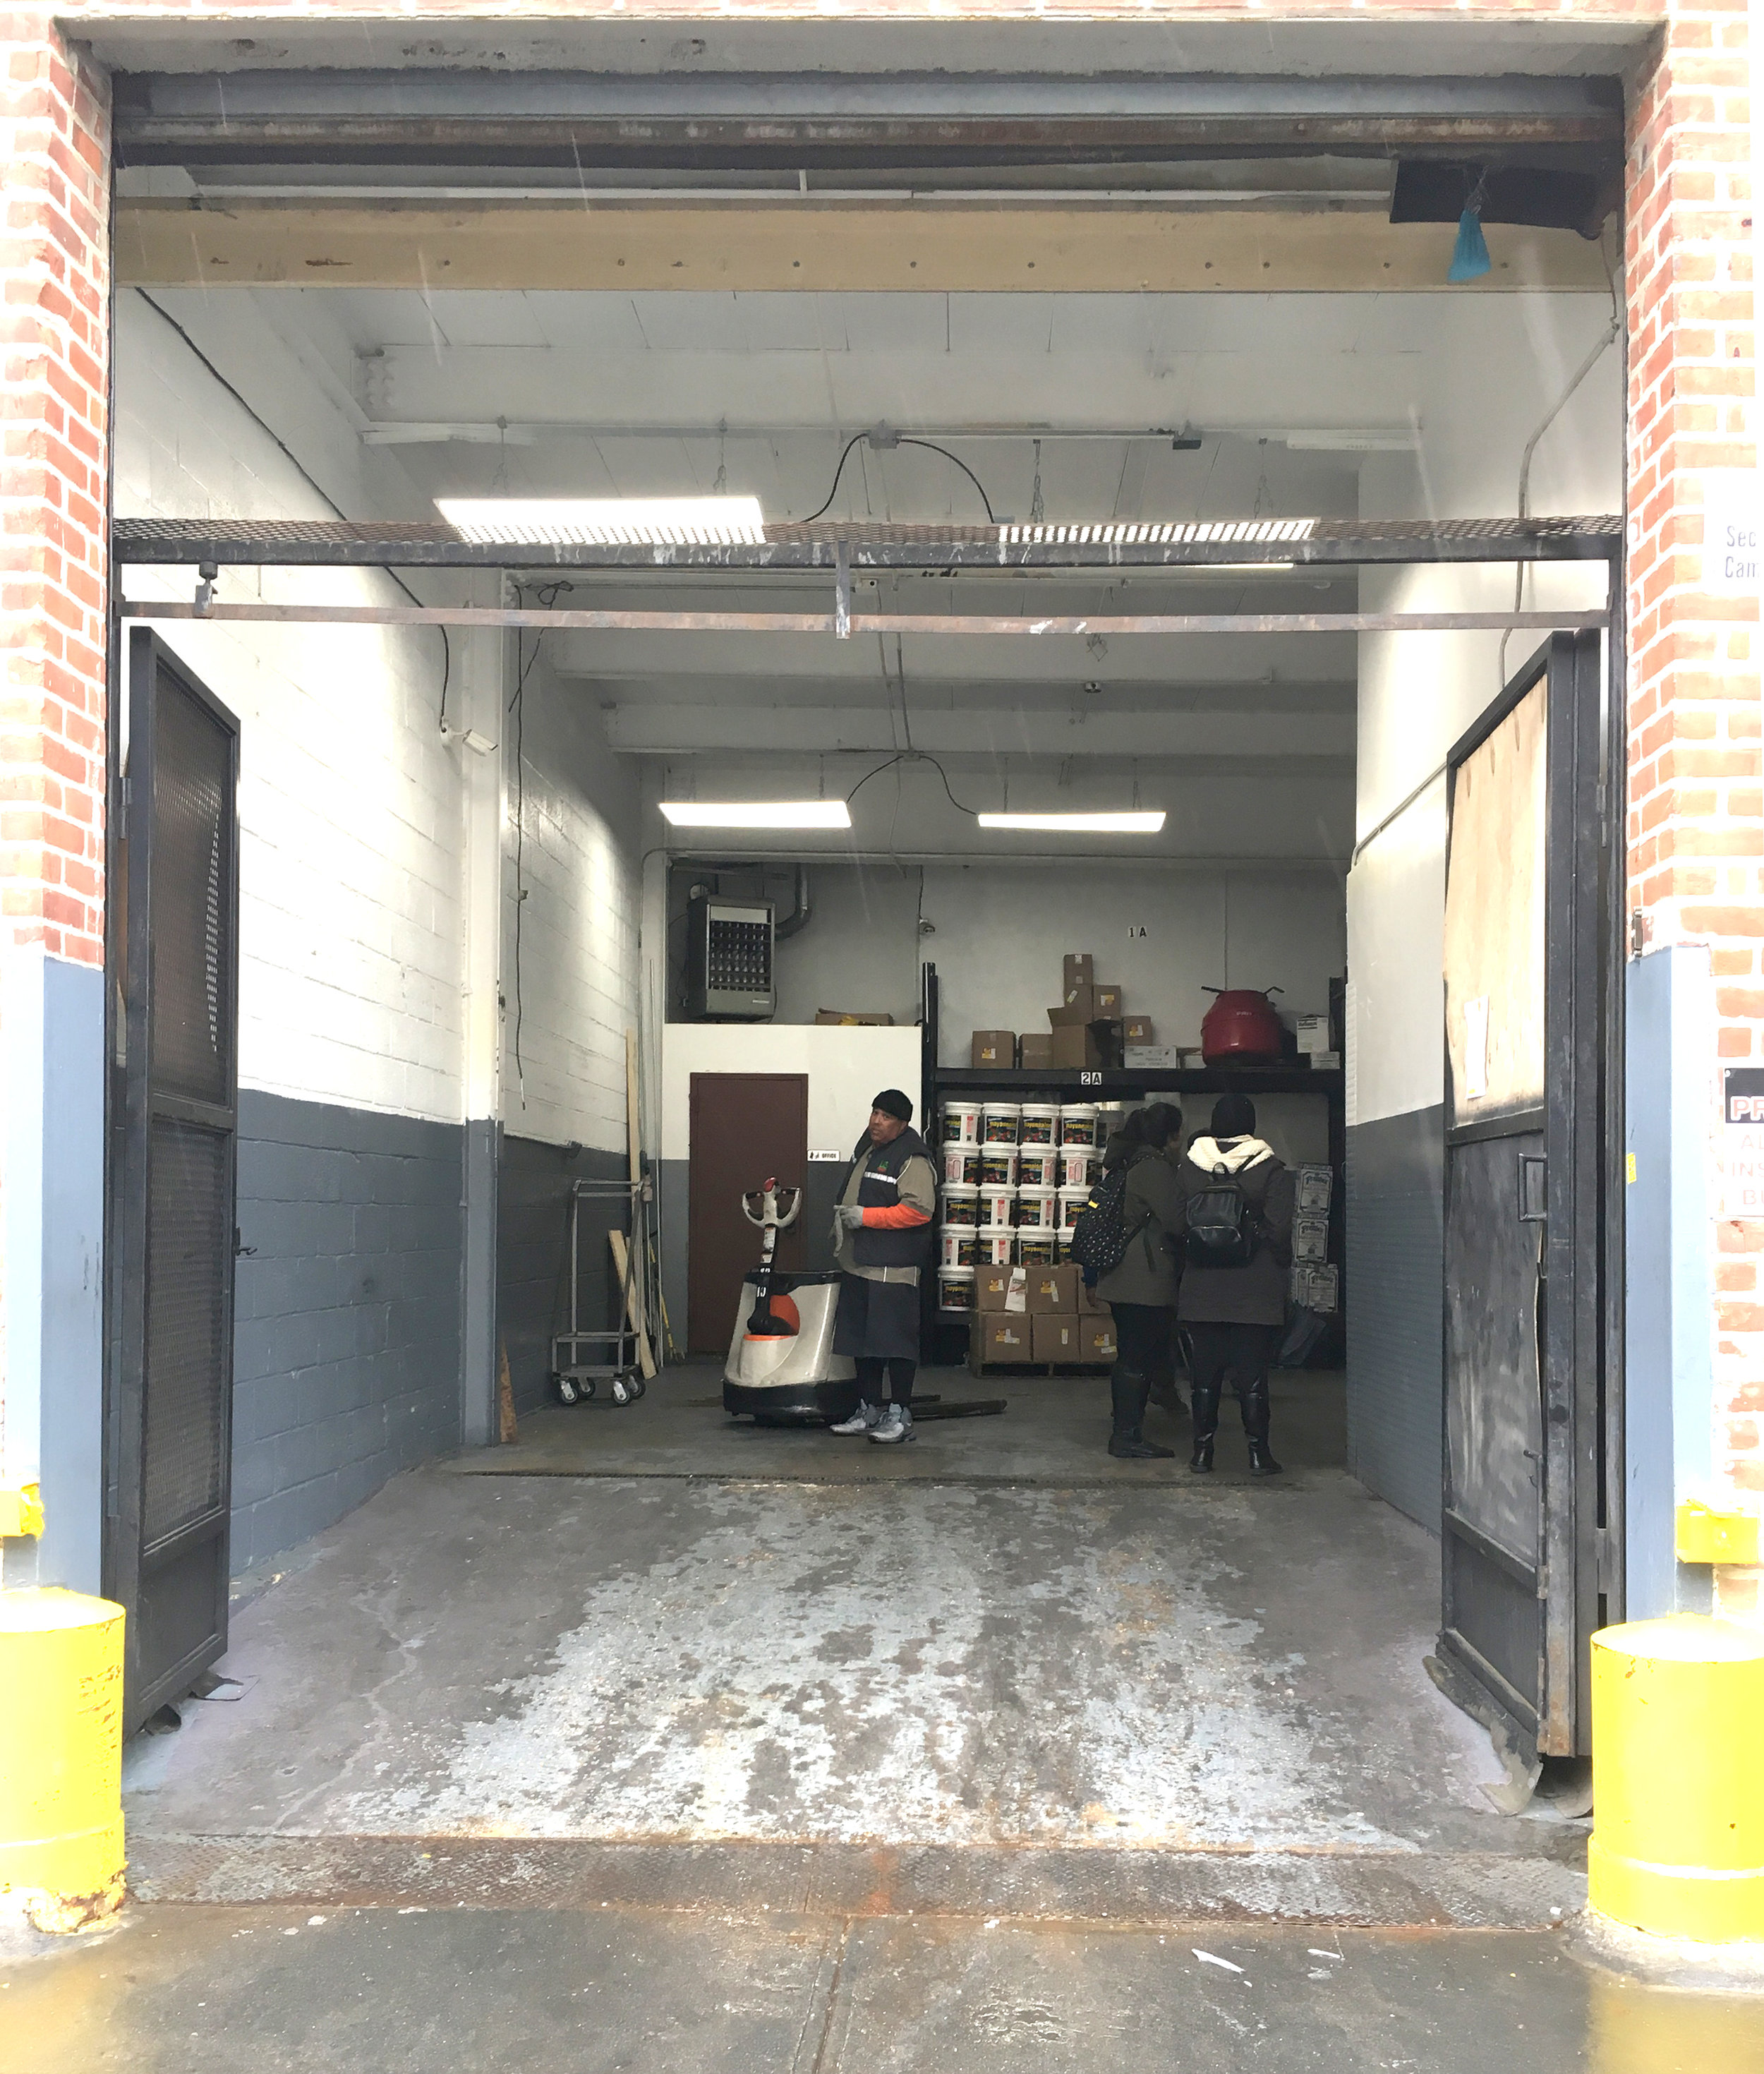 Entrance of the Halal Guys' kitchen warehouse in Astoria, Queens. All Halal Guys' food carts are brought here every night to be washed and stored.